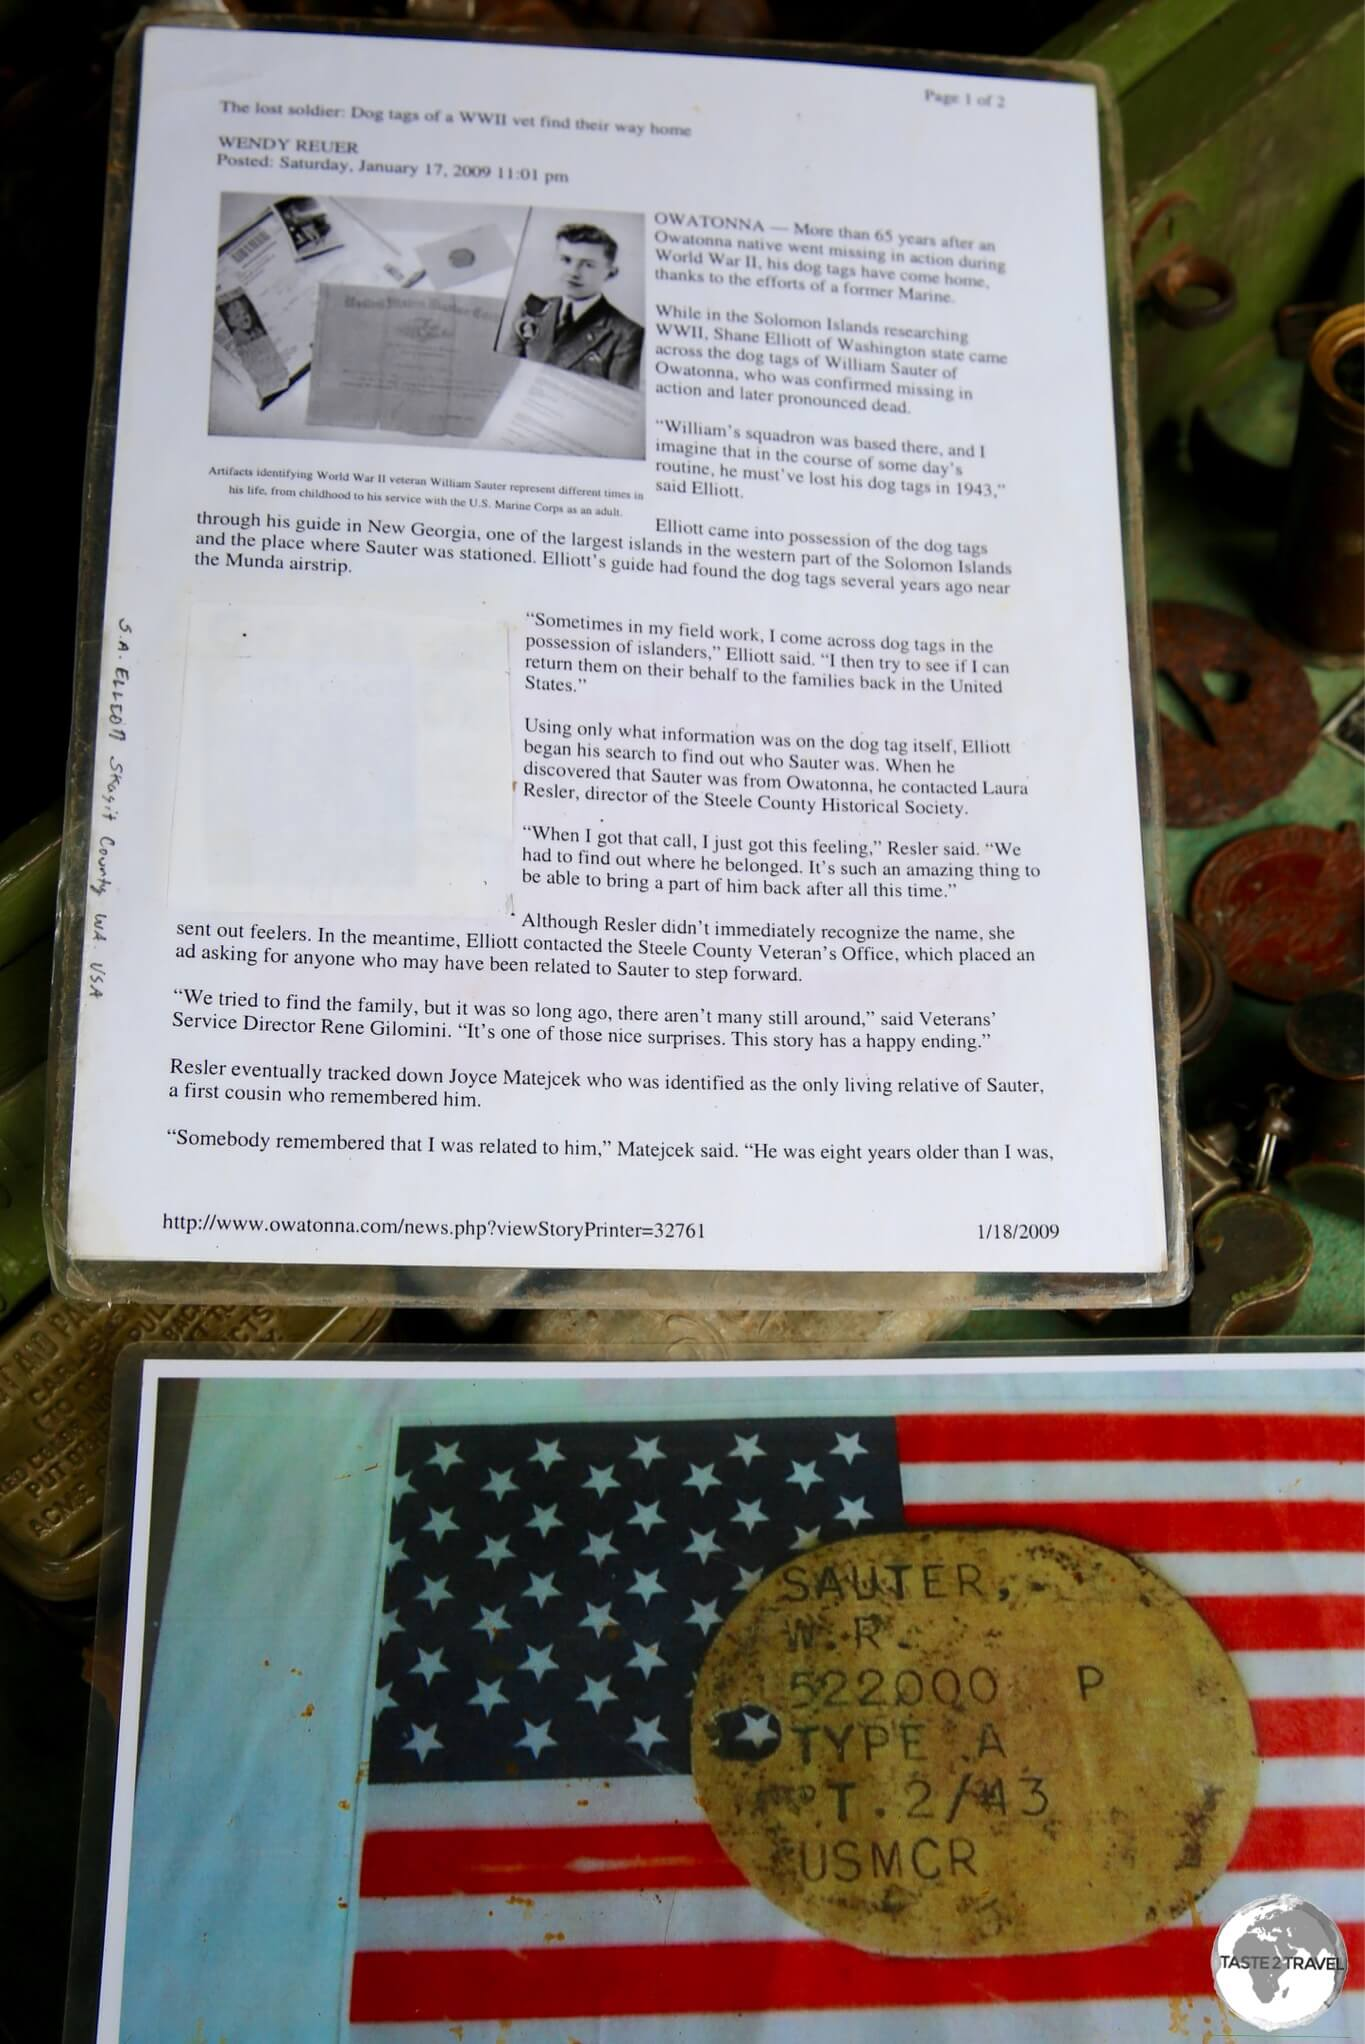 An article in an American newspaper tells the story of the return of a local soldiers dog tags from Barney.